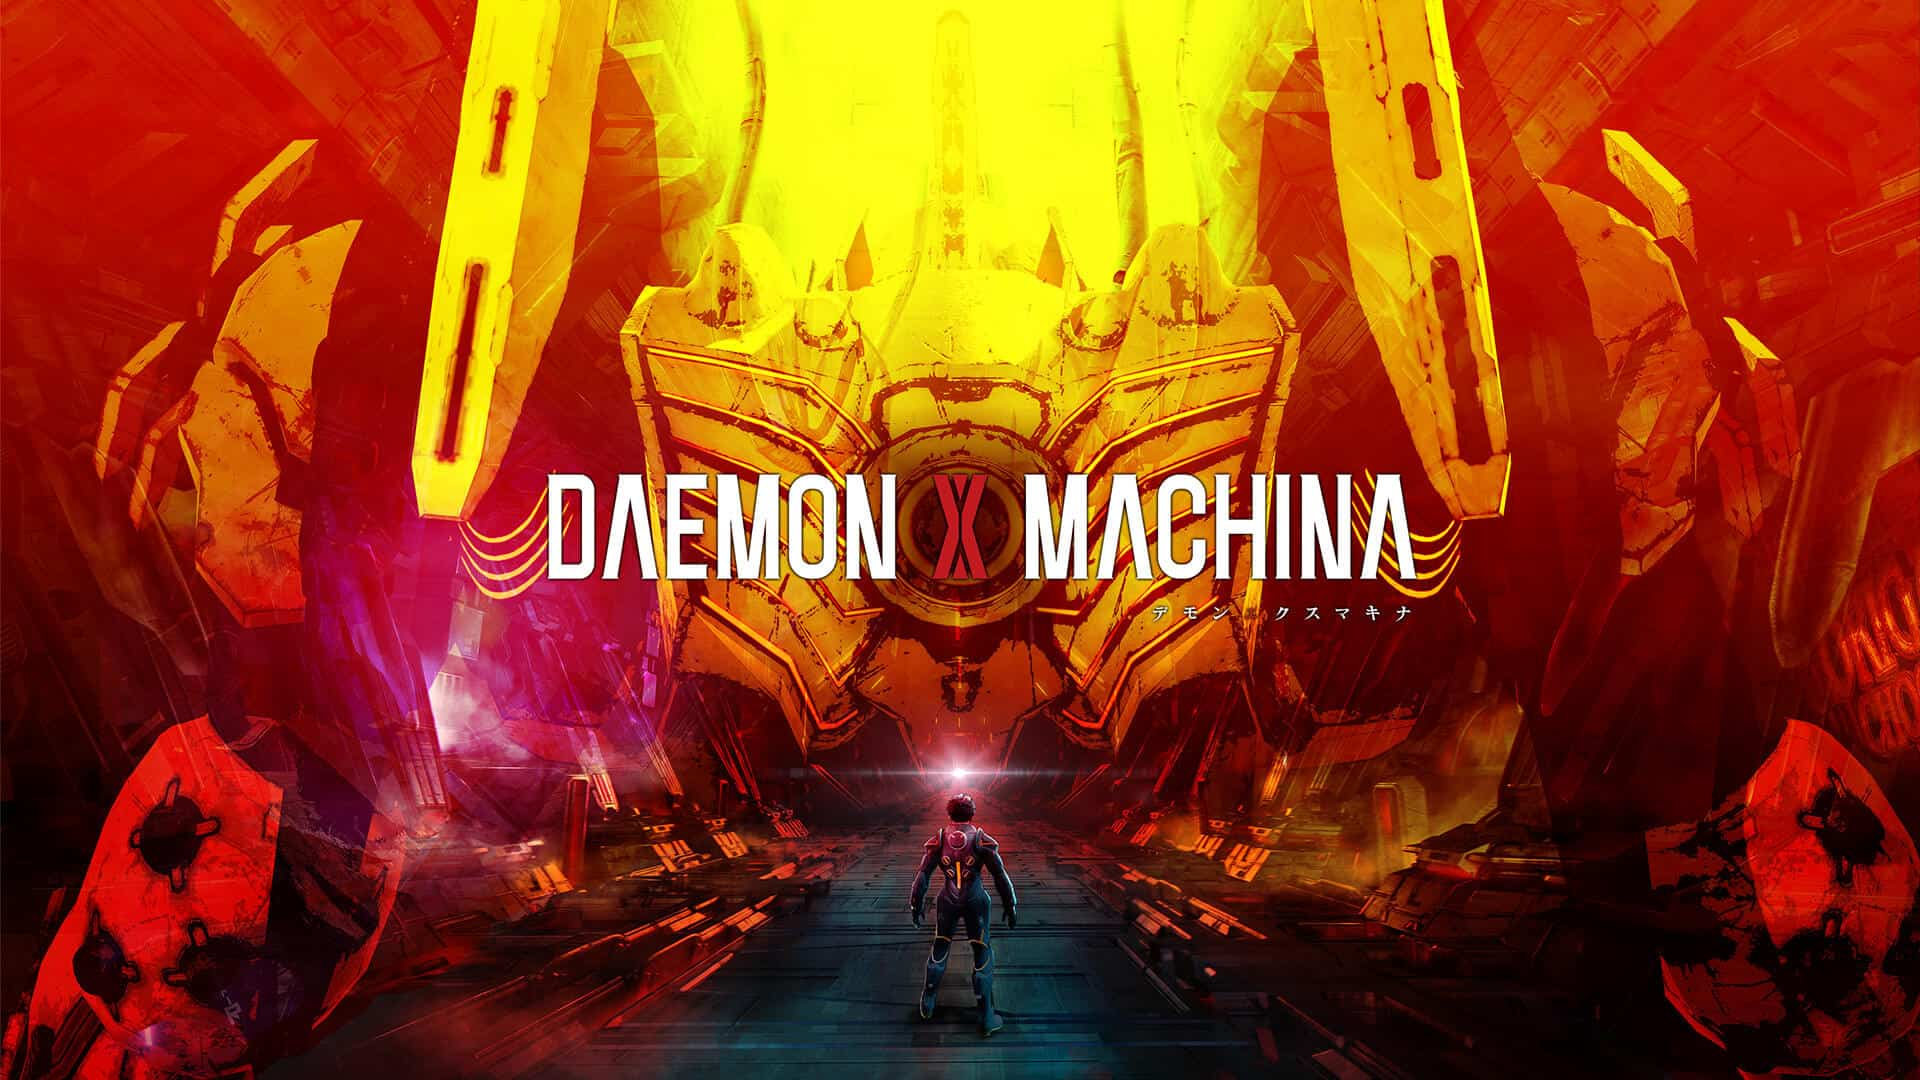 DAEMON X MACHINA Orbital Limited Edition For Nintendo Switch Coming To Australia, New Zealand And Europe